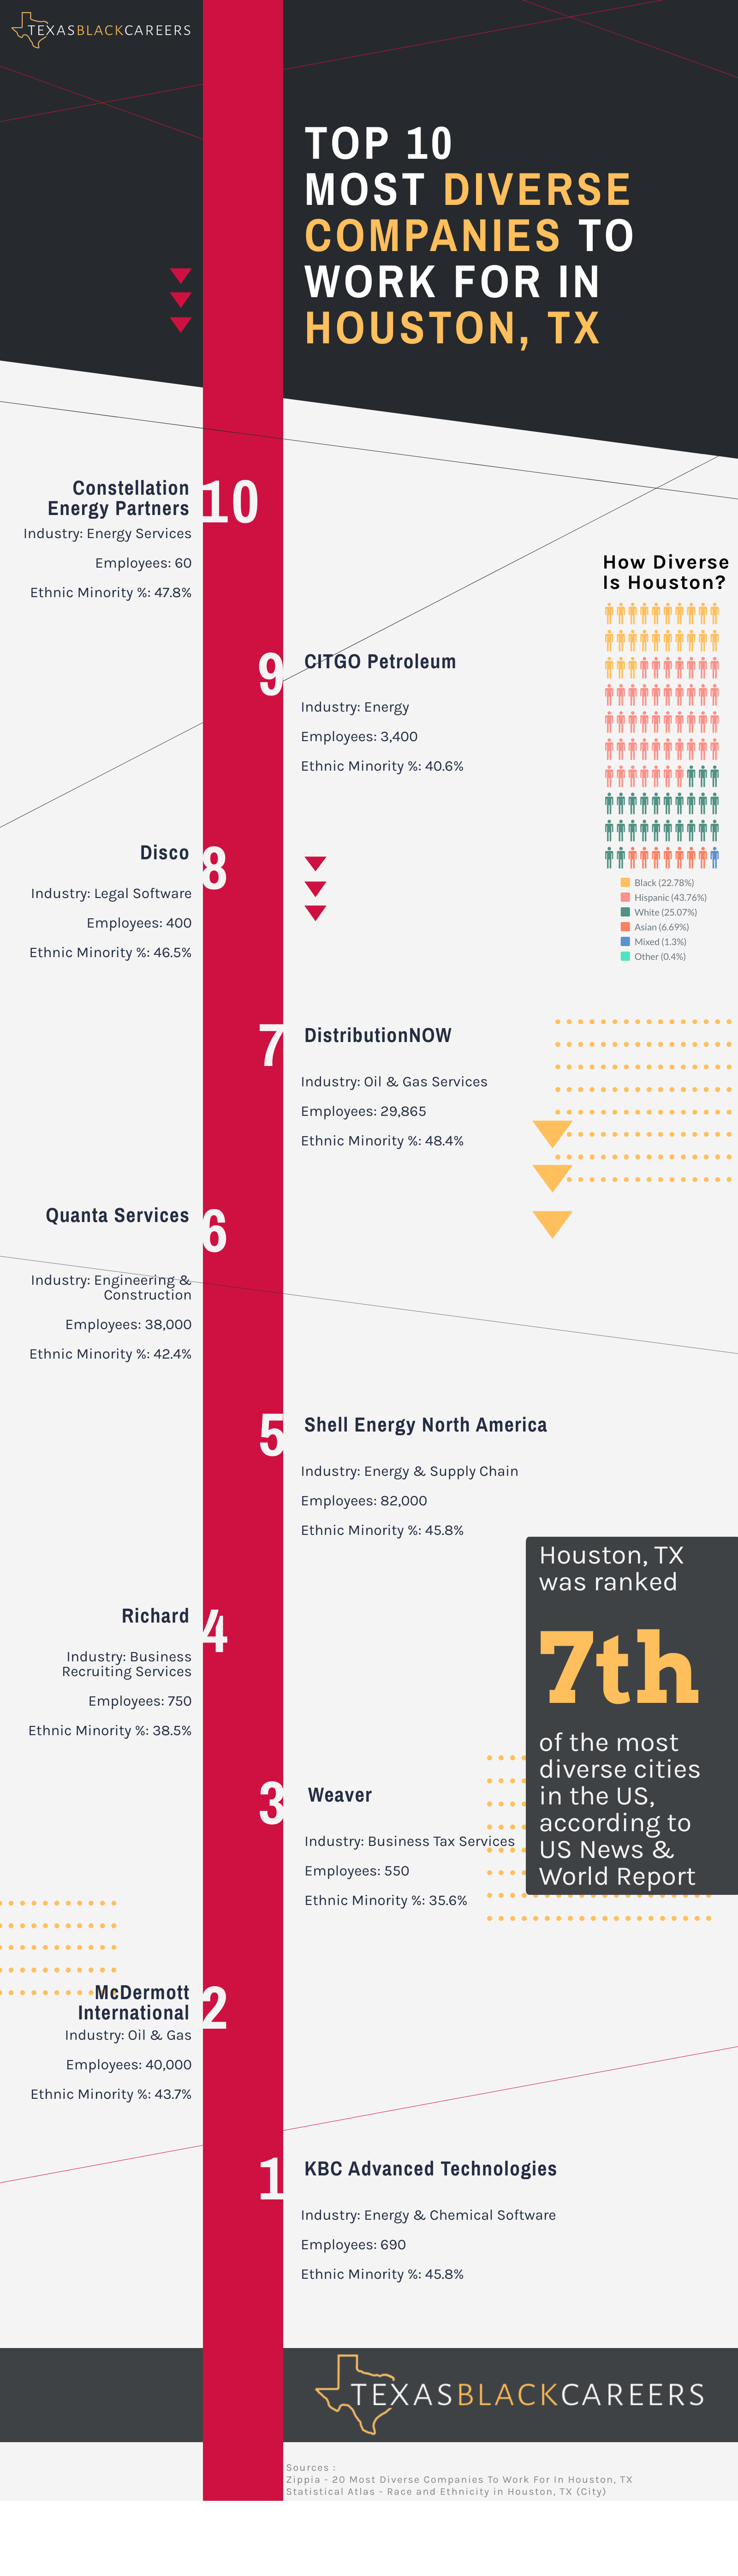 Top 10 Diverse Companies in Houston infographic